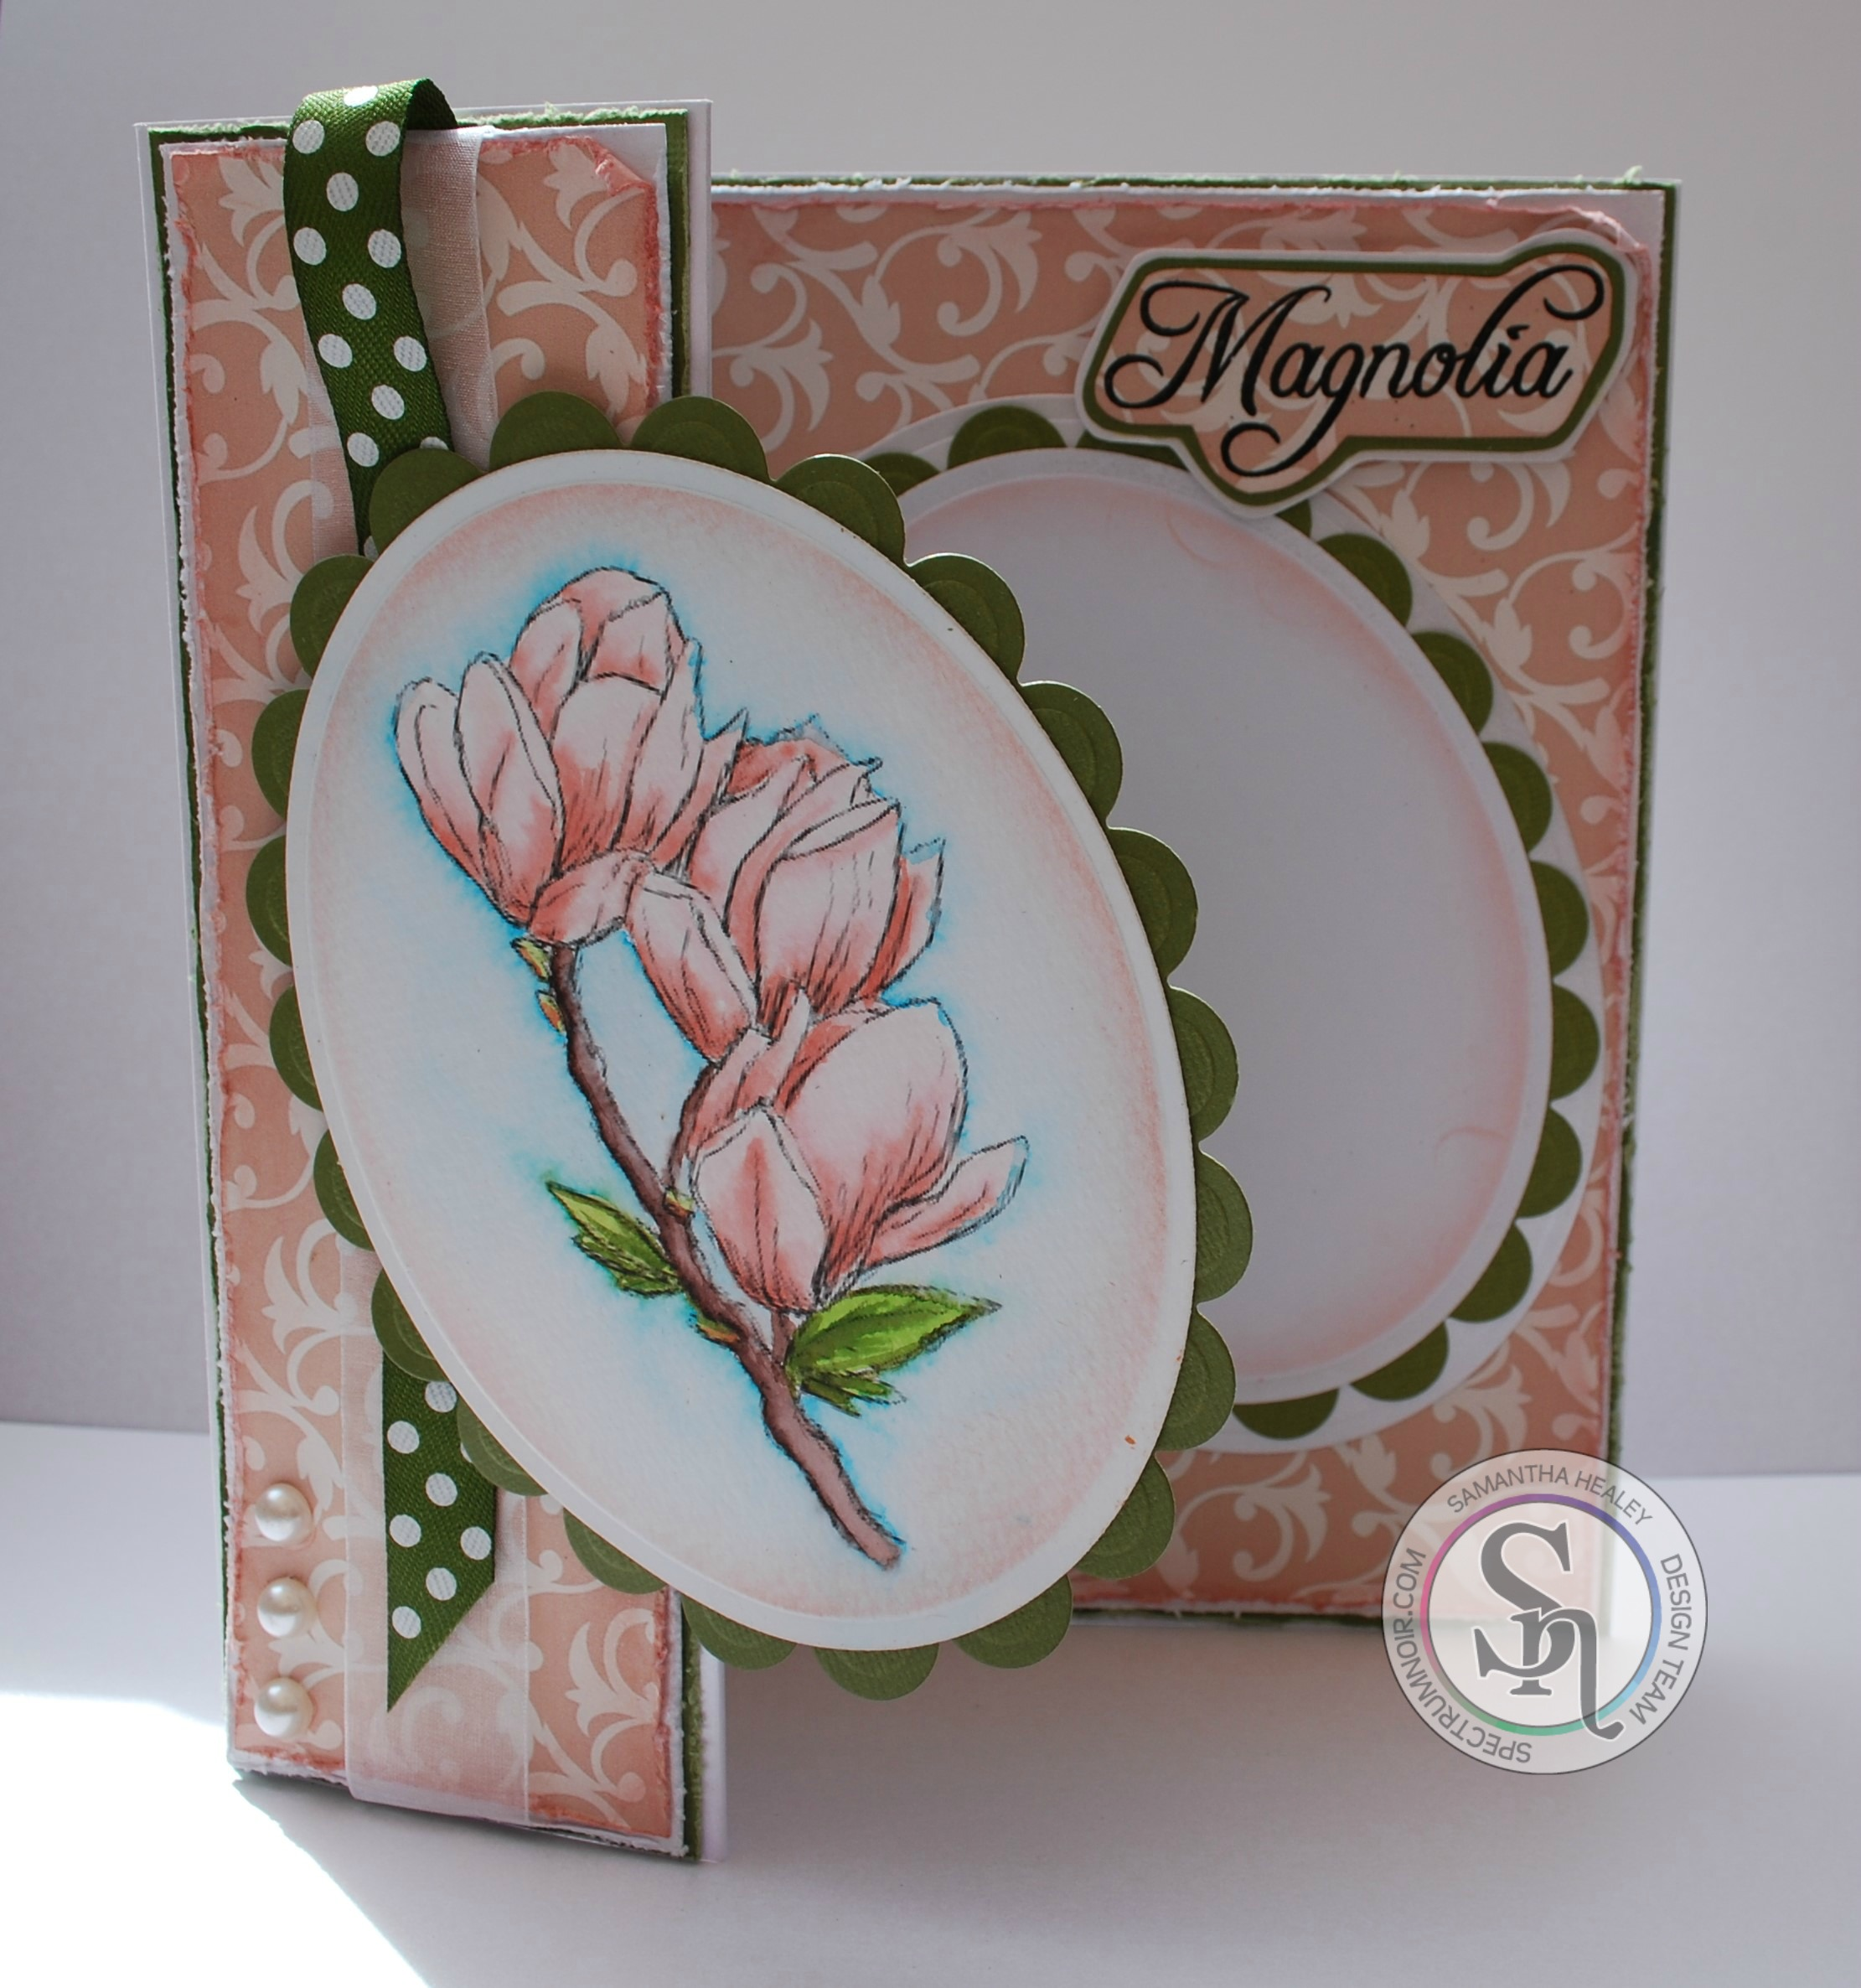 Sheena's A Little Bit Floral Magnolia stamp, Spectrum